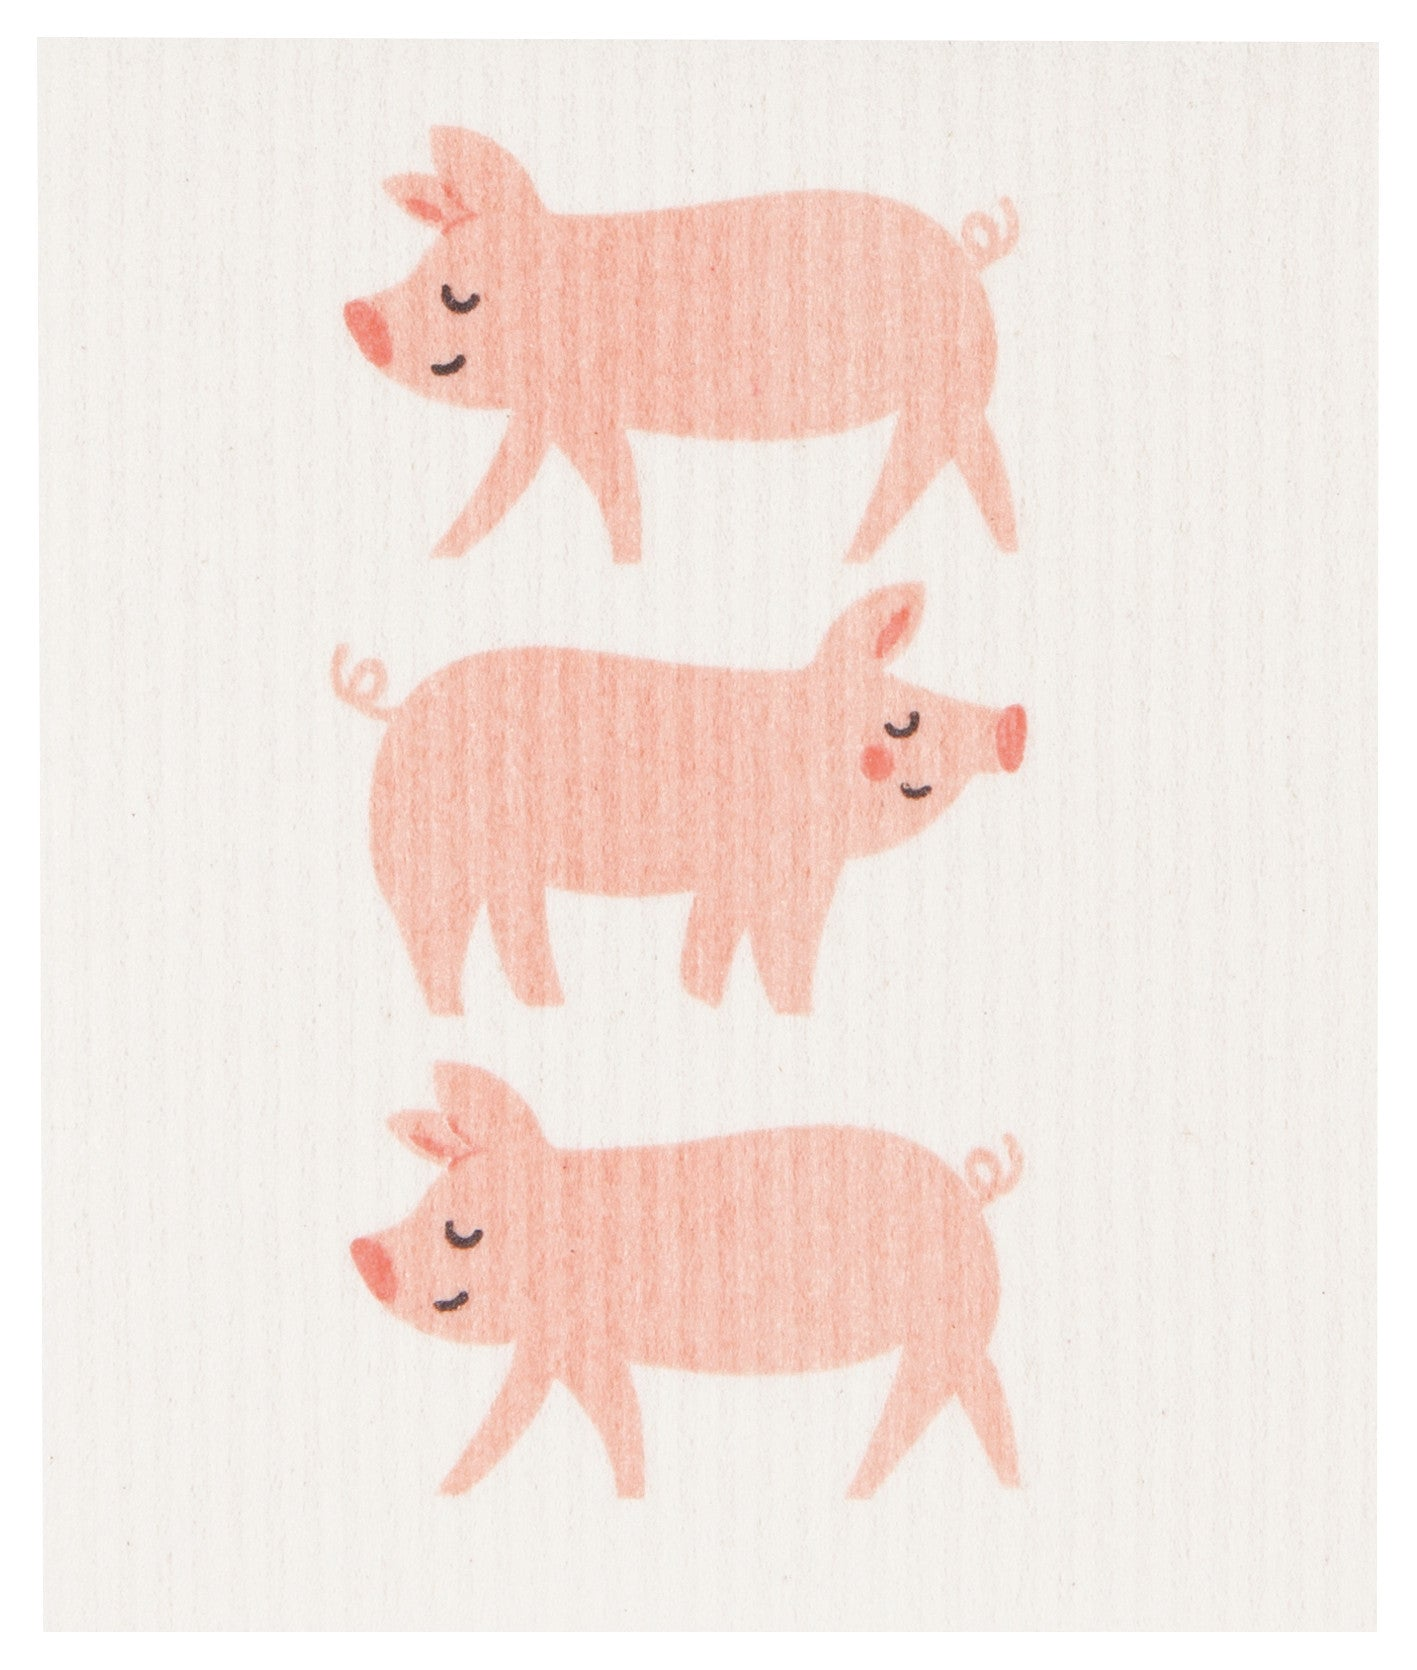 Swedish Sponge Cloth - Penny Pig